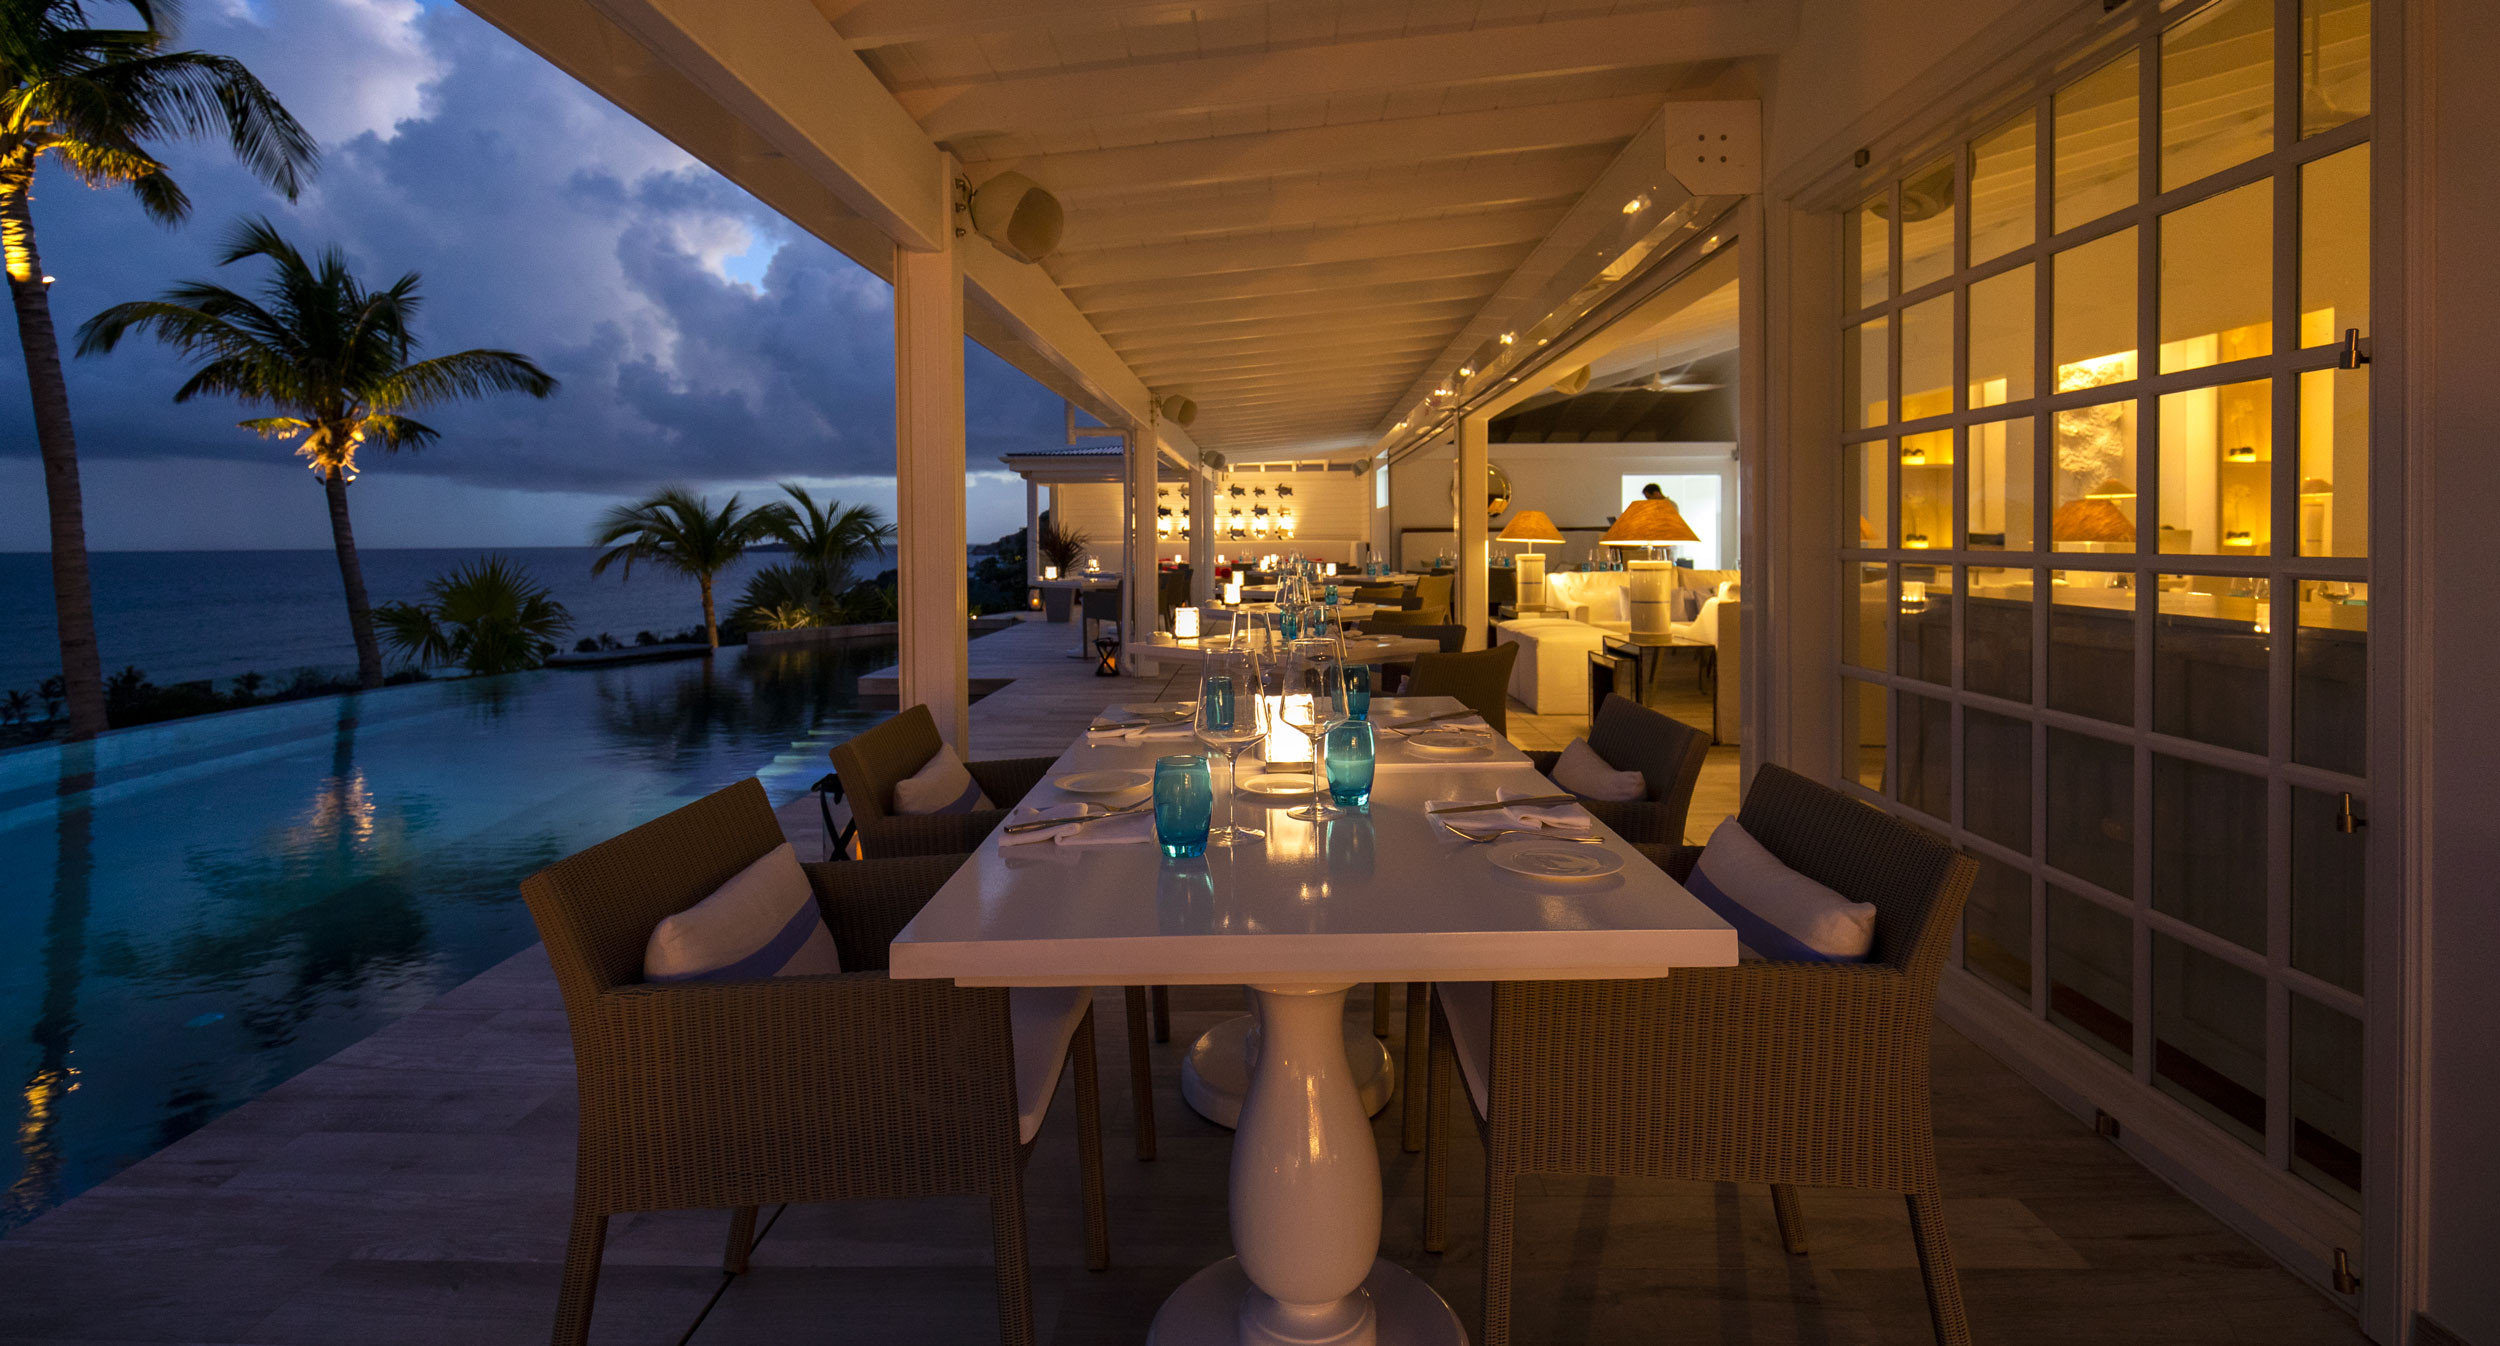 Toiny Restaurant is widely acclaimed as one of the best restaurants in the Caribbean.